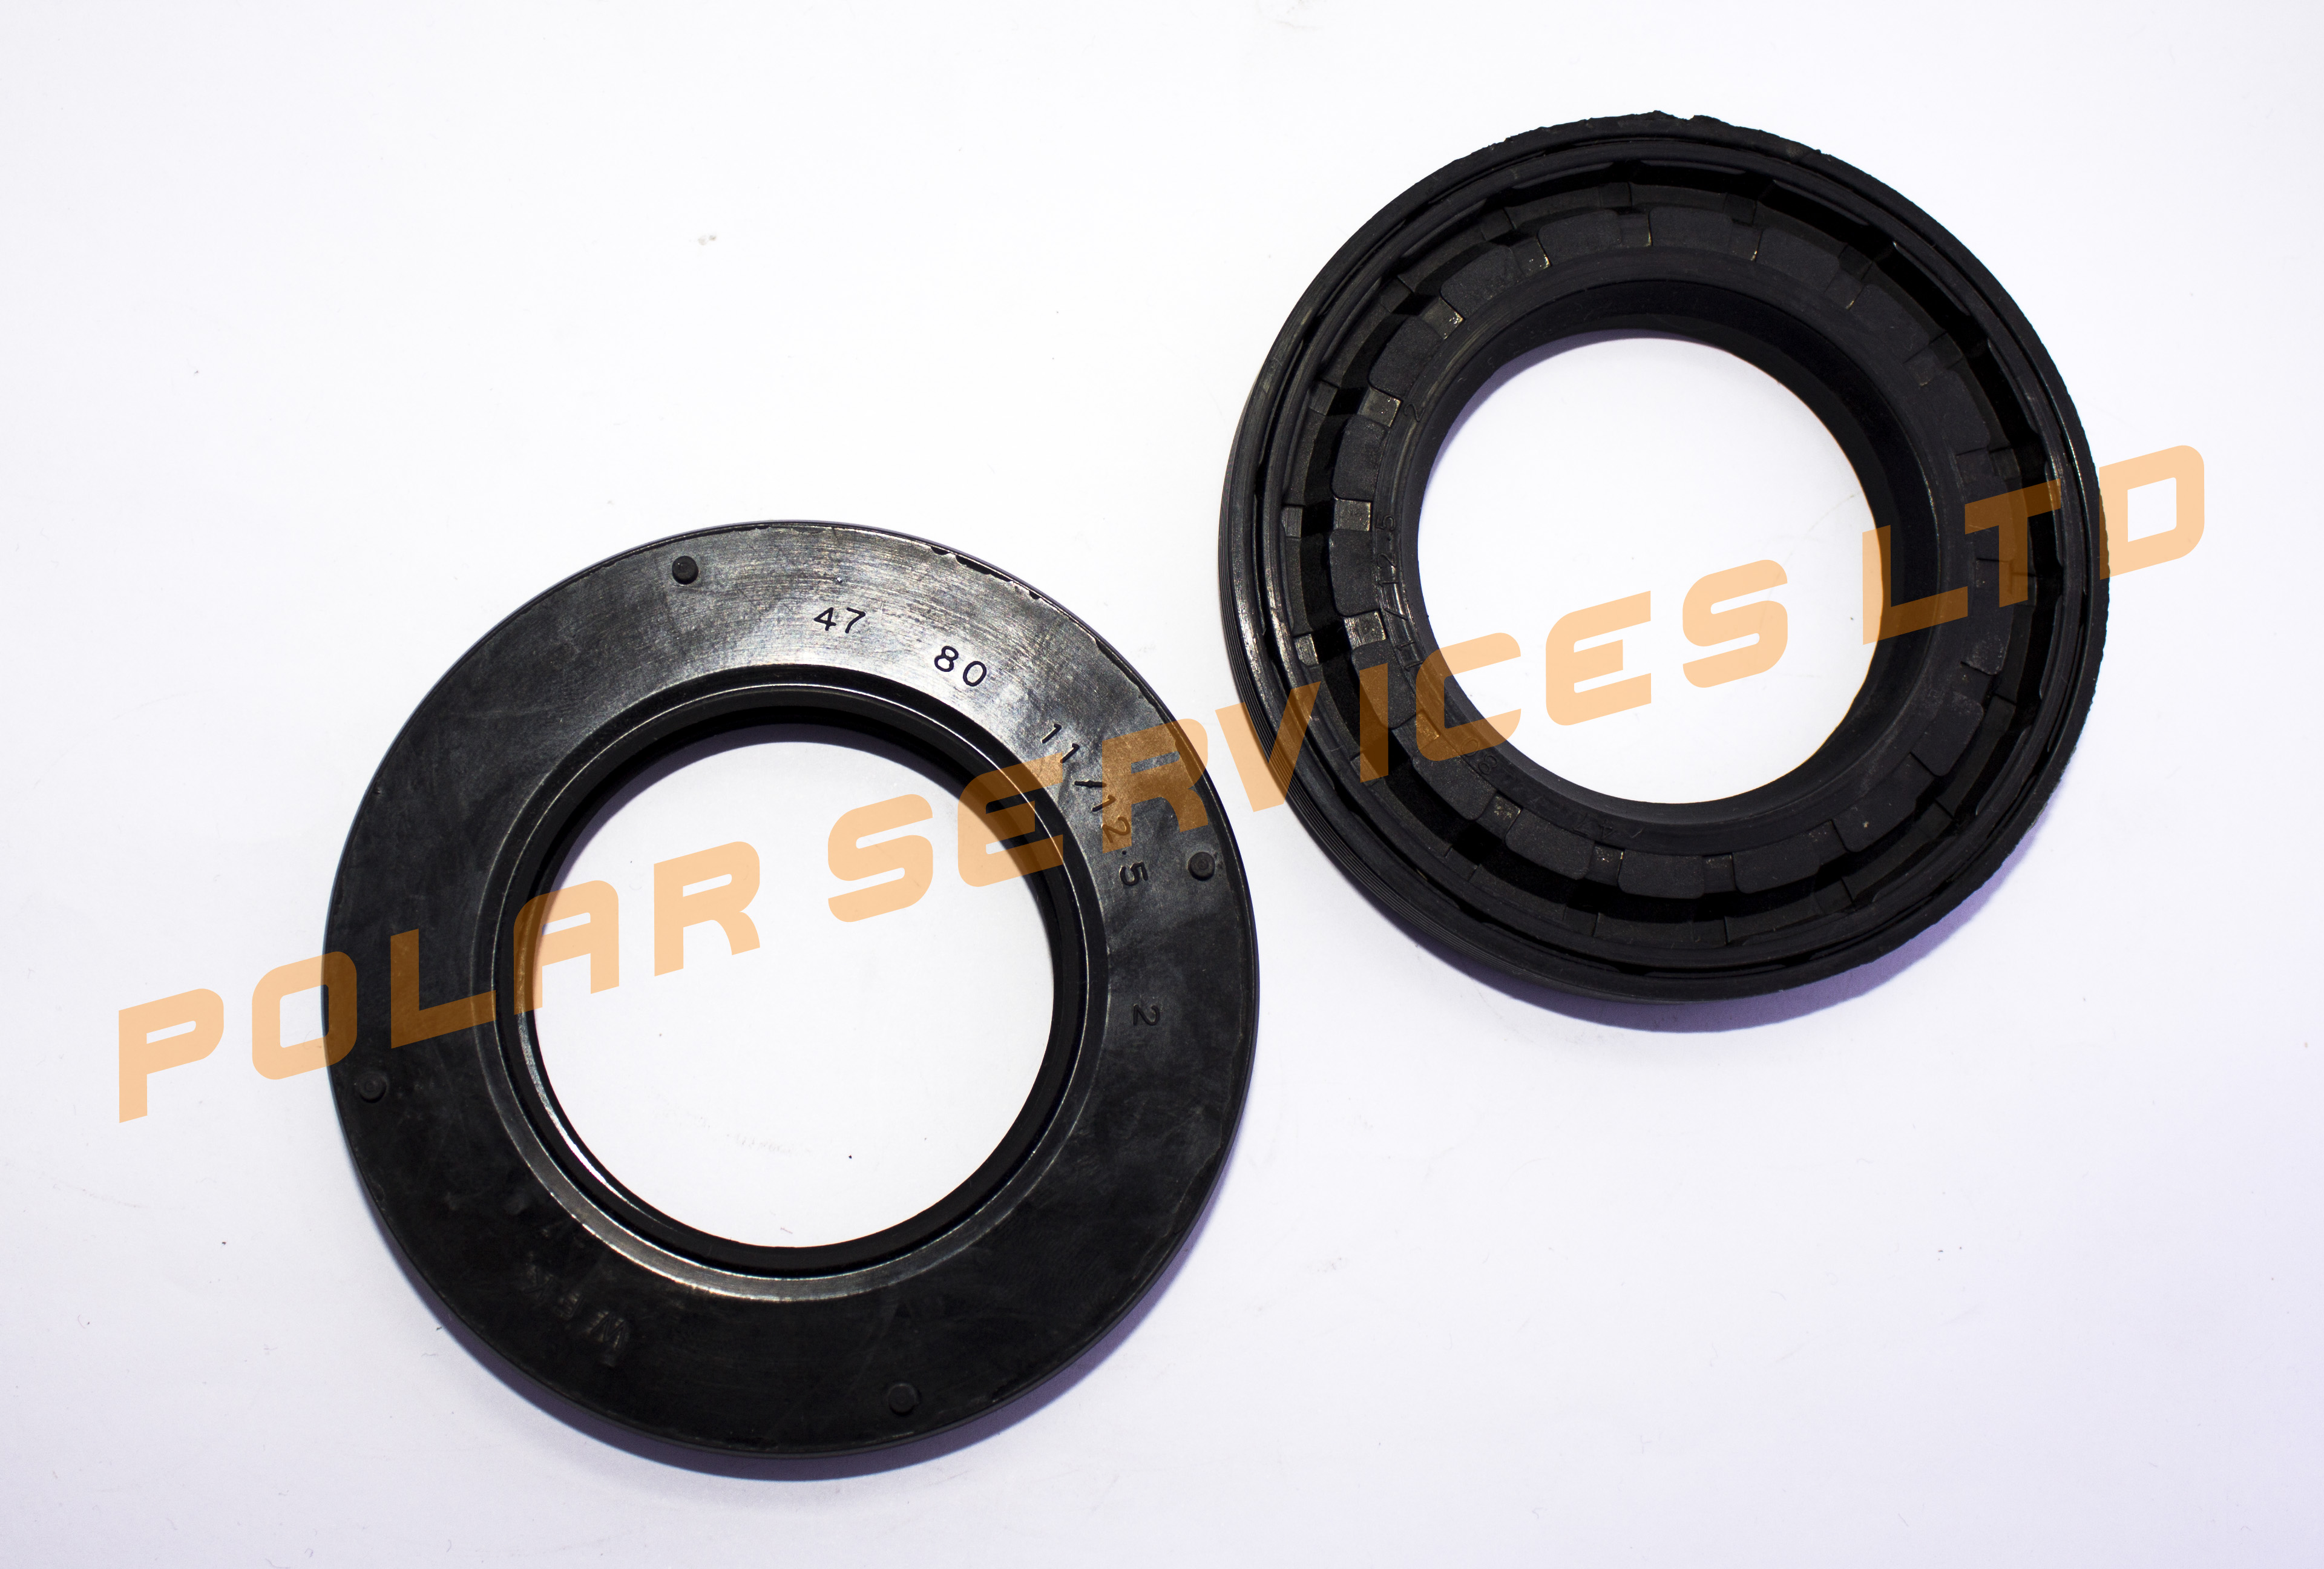 WASHING MACHINE BEARING SEAL 47 X 80 X 11 13.5 ELECTROLUX/ ZANUSSI/ REX 3790024206 EX 1249661016 Malta, 								Washing Machine Malta, Polar Services LTD Malta Malta